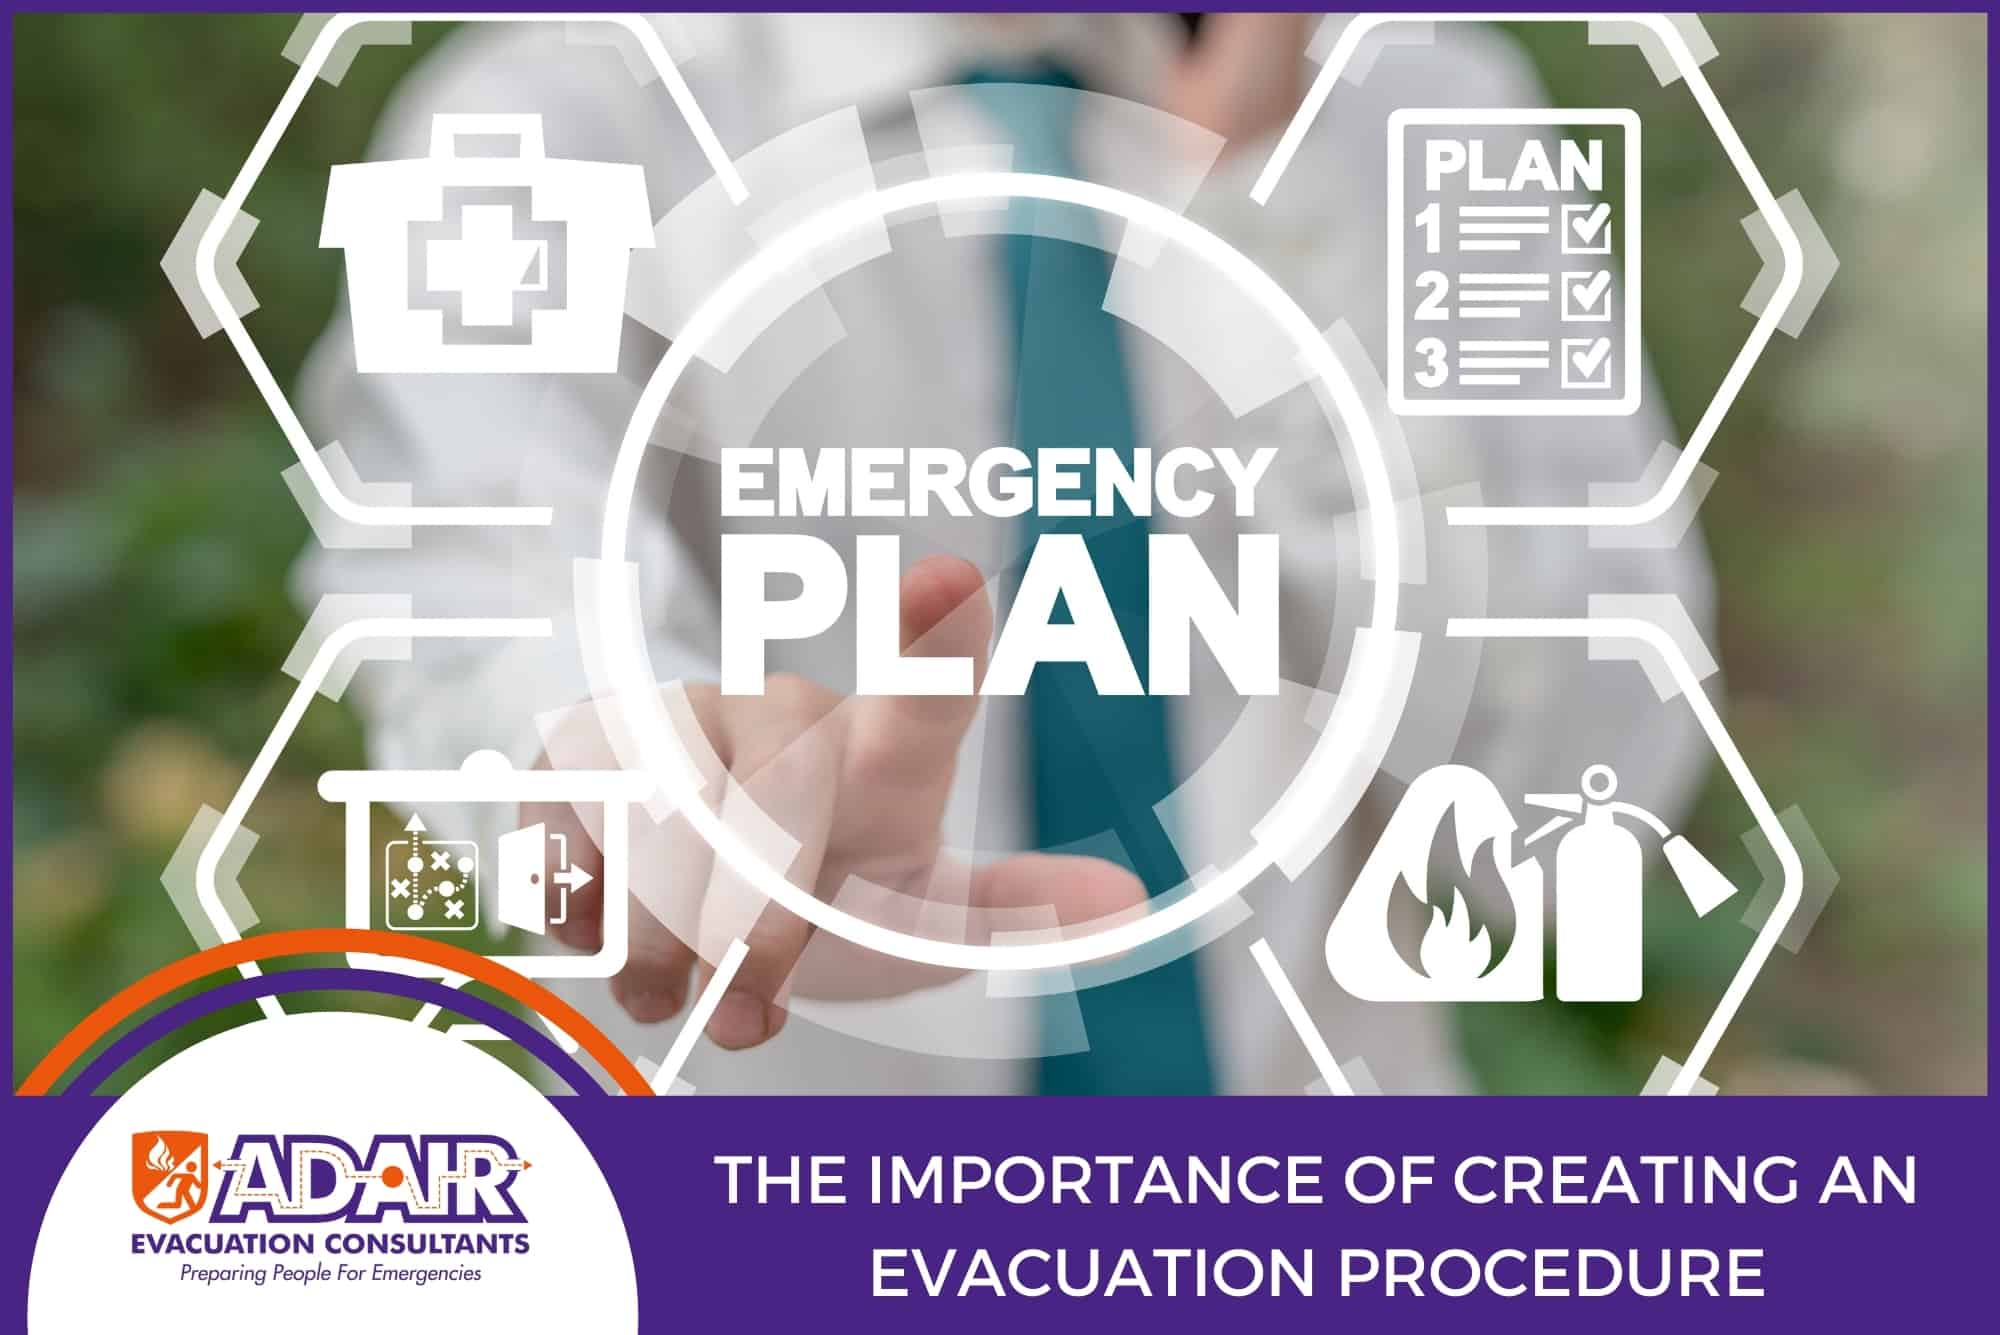 The Importance of Creating an Evacuation Procedure